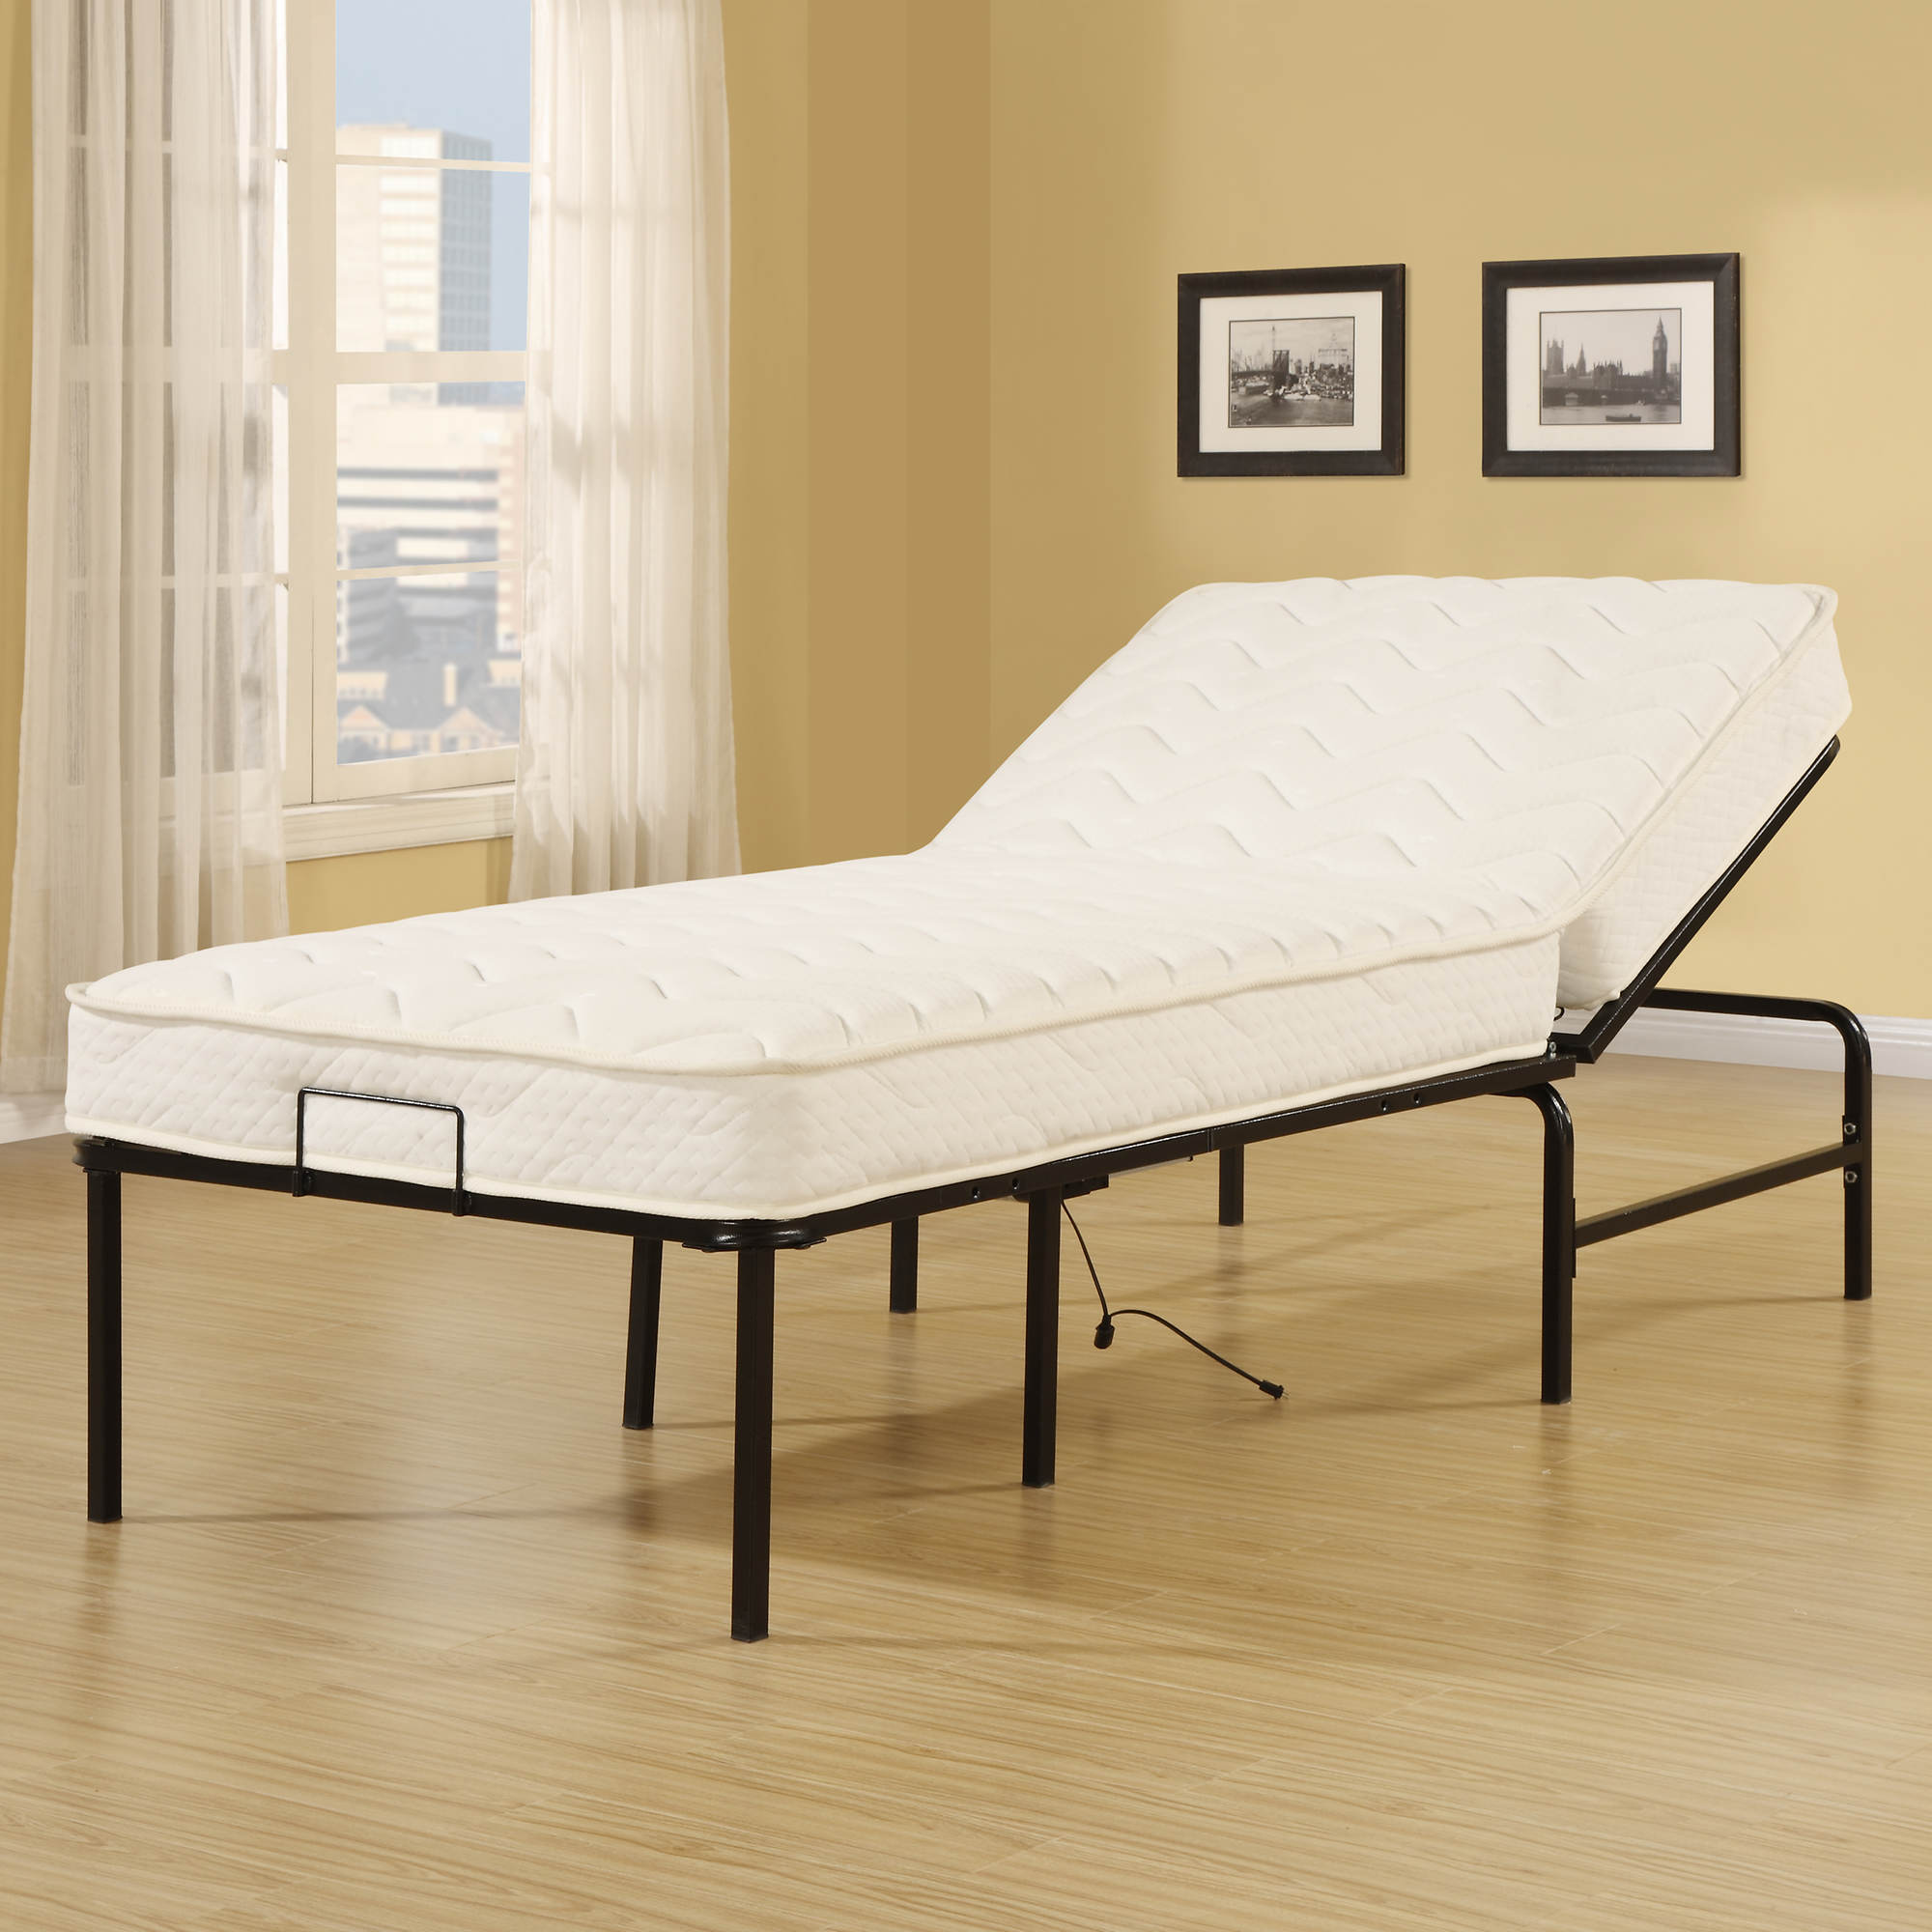 Handy Living Twin Size Bed Frame - home decor - Decordova.us